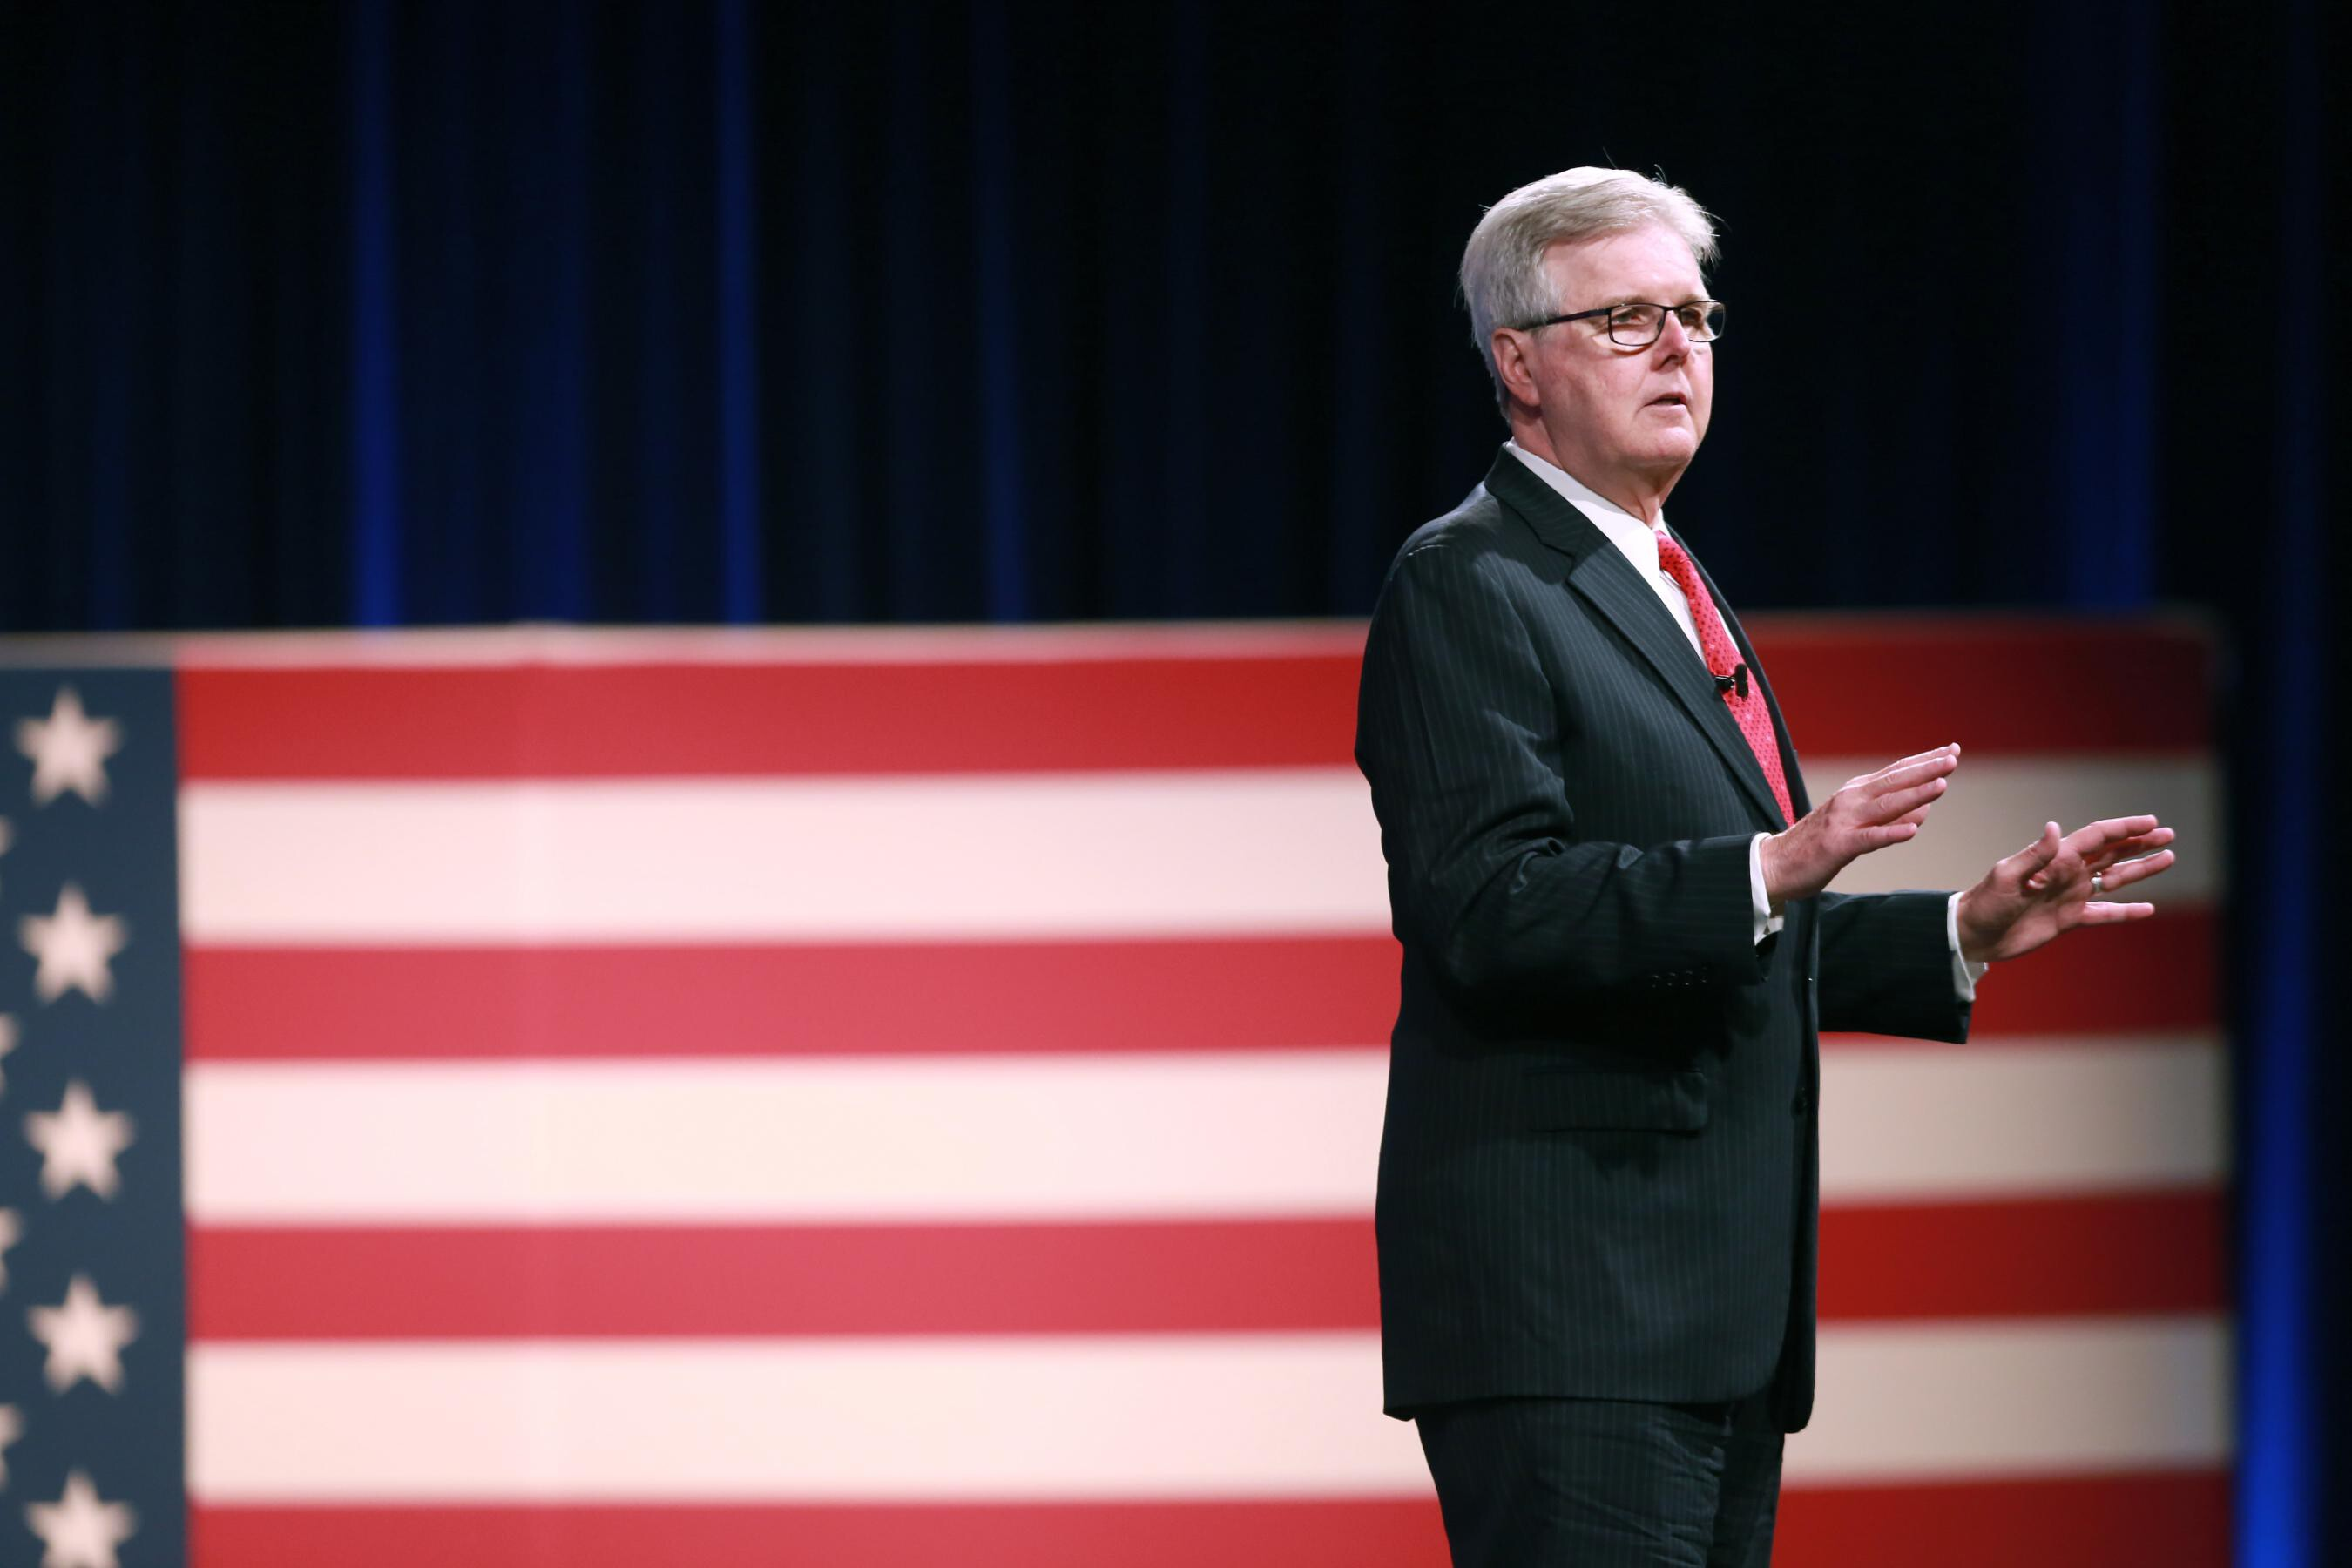 Texas Lt. Gov. Dan Patrick pays out $25,000 to Democrat for Republican voter fraud